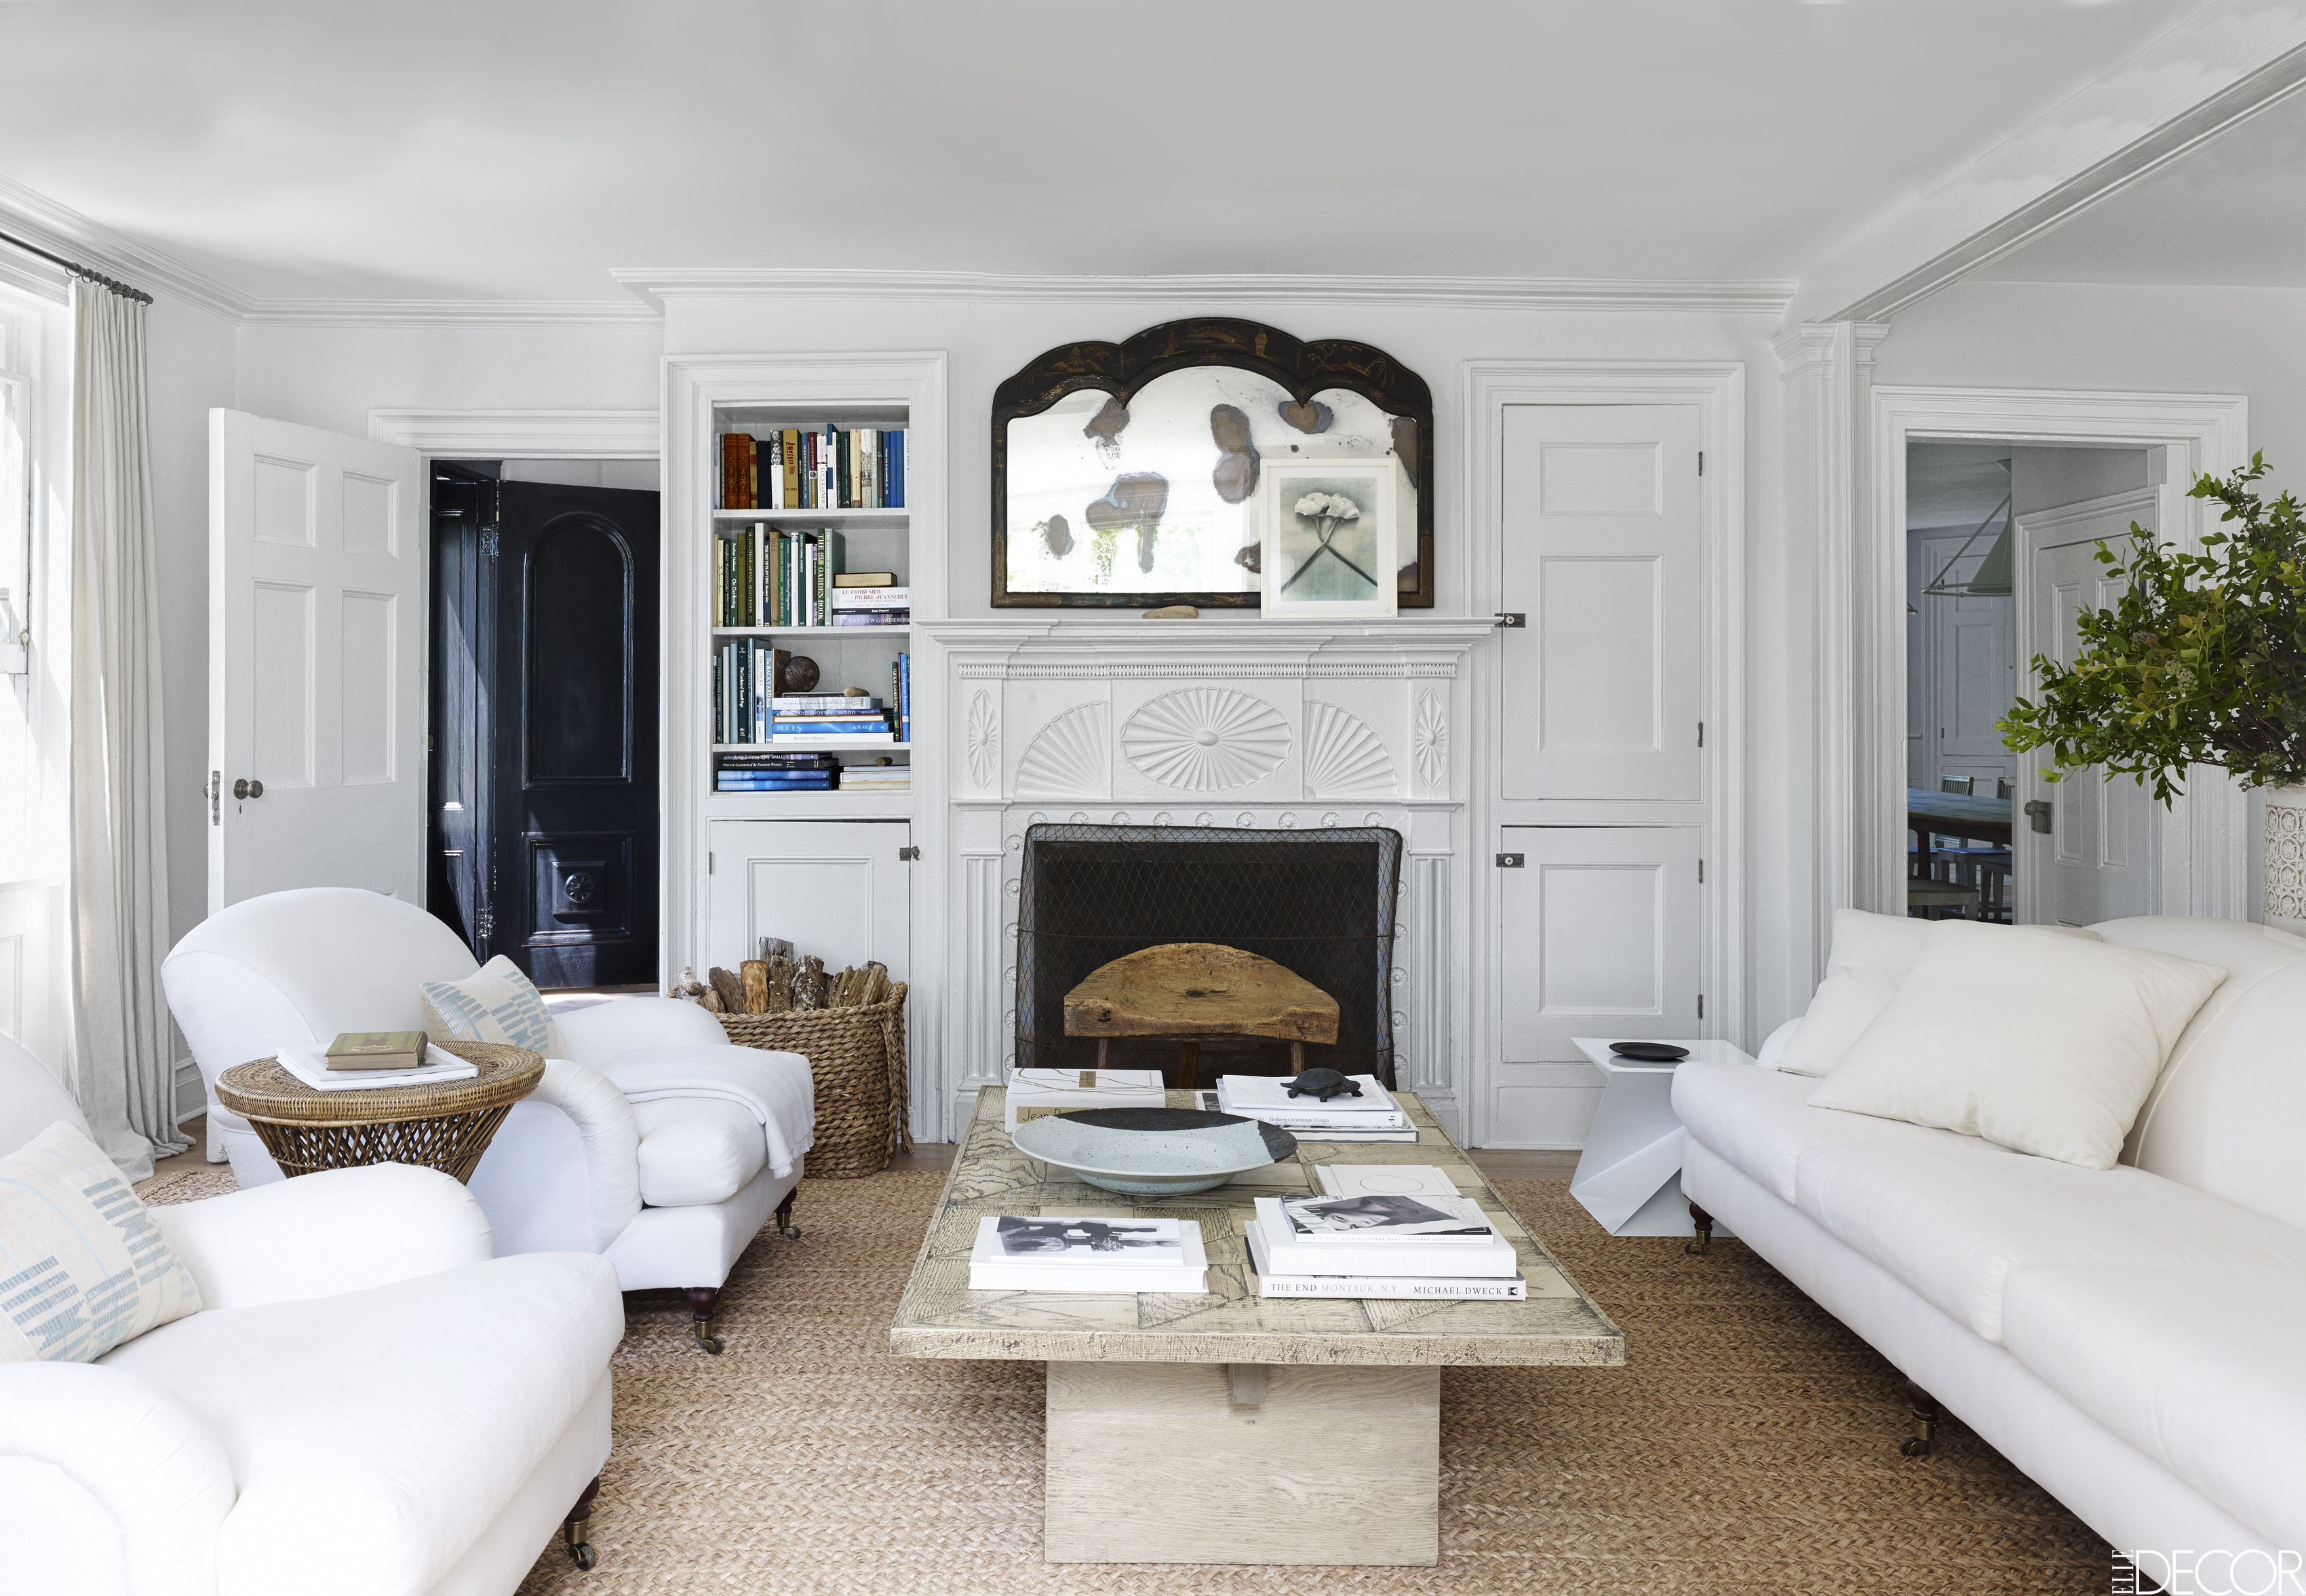 20 Best White Sofa Ideas - Living Room Decorating Ideas For White Sofas